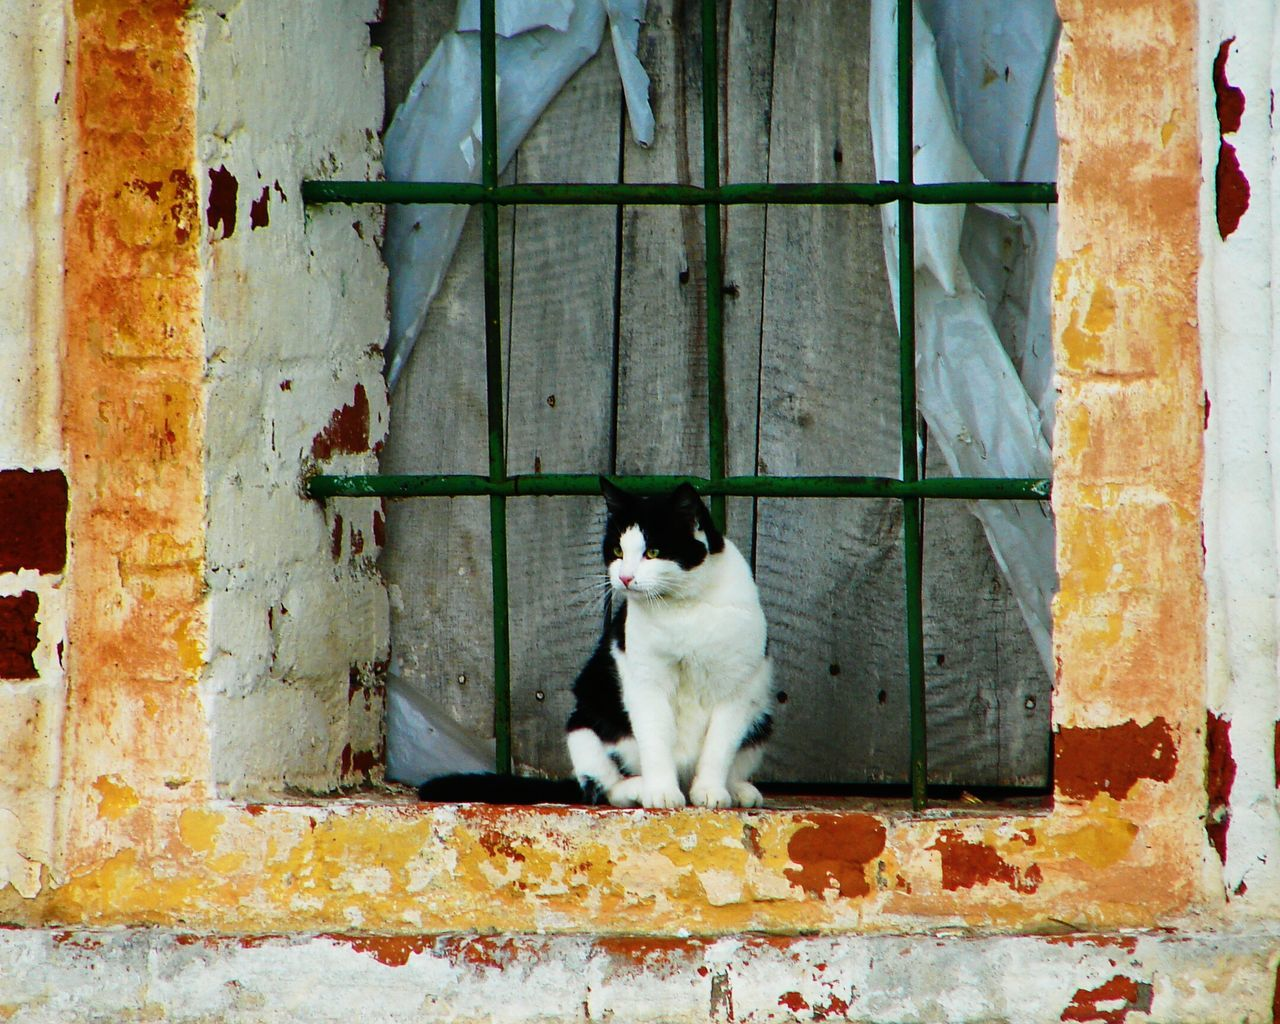 Domestic Animals Pets Animal Themes One Animal Domestic Cat No People Portrait Full Length Outdoors Day Feline Watching Travel Photography In The Window Looking Into A Window